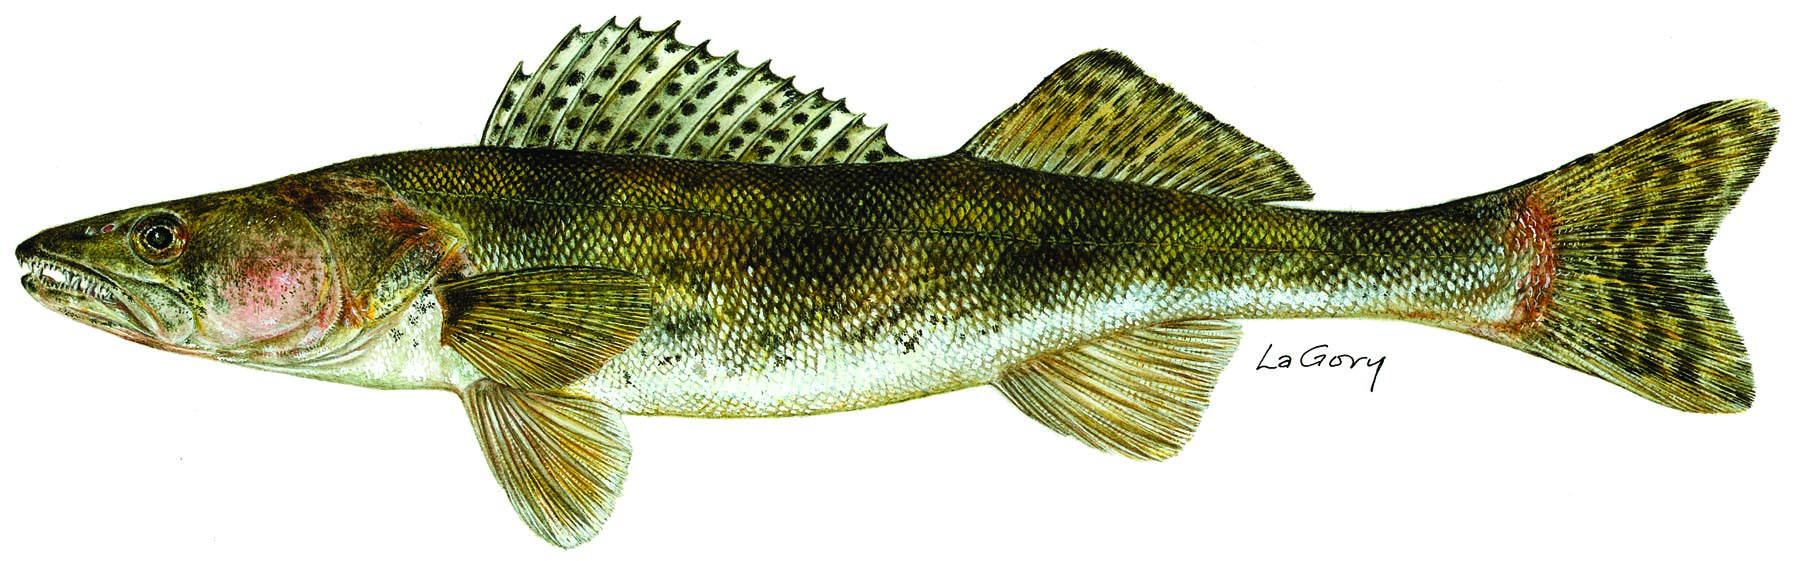 The Wyoming Game And Fish Department Is Now Accepting Artwork Of Sauger A